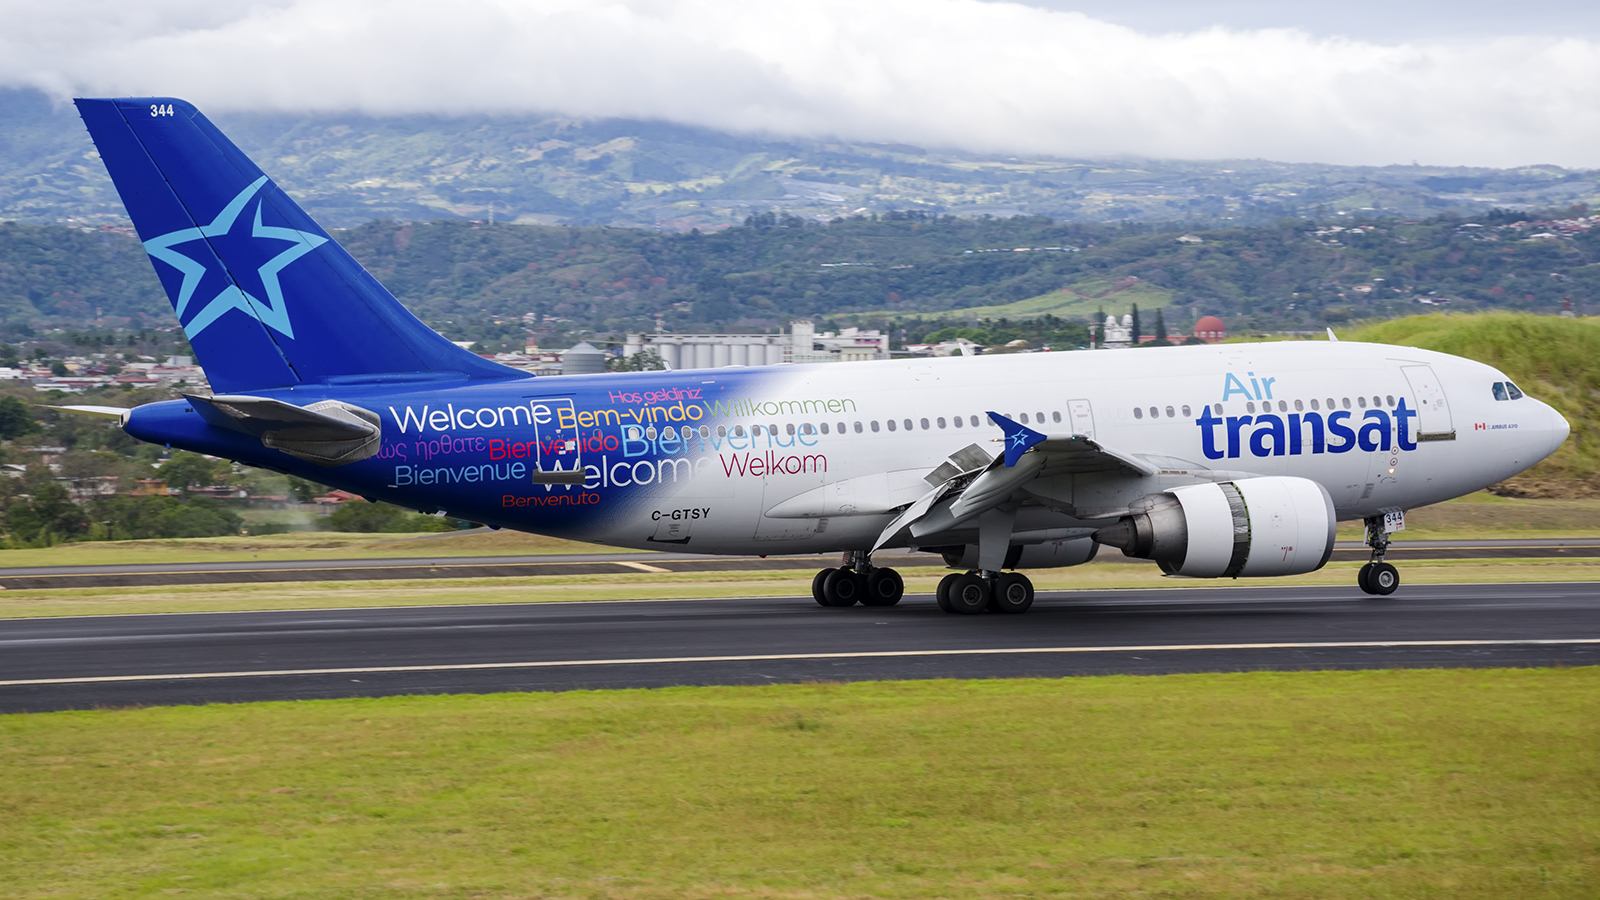 Click image for larger version.  Name:AirTransat_C-GTSY_19JAN18_1200_profile.jpg Views:18 Size:887.2 KB ID:13233